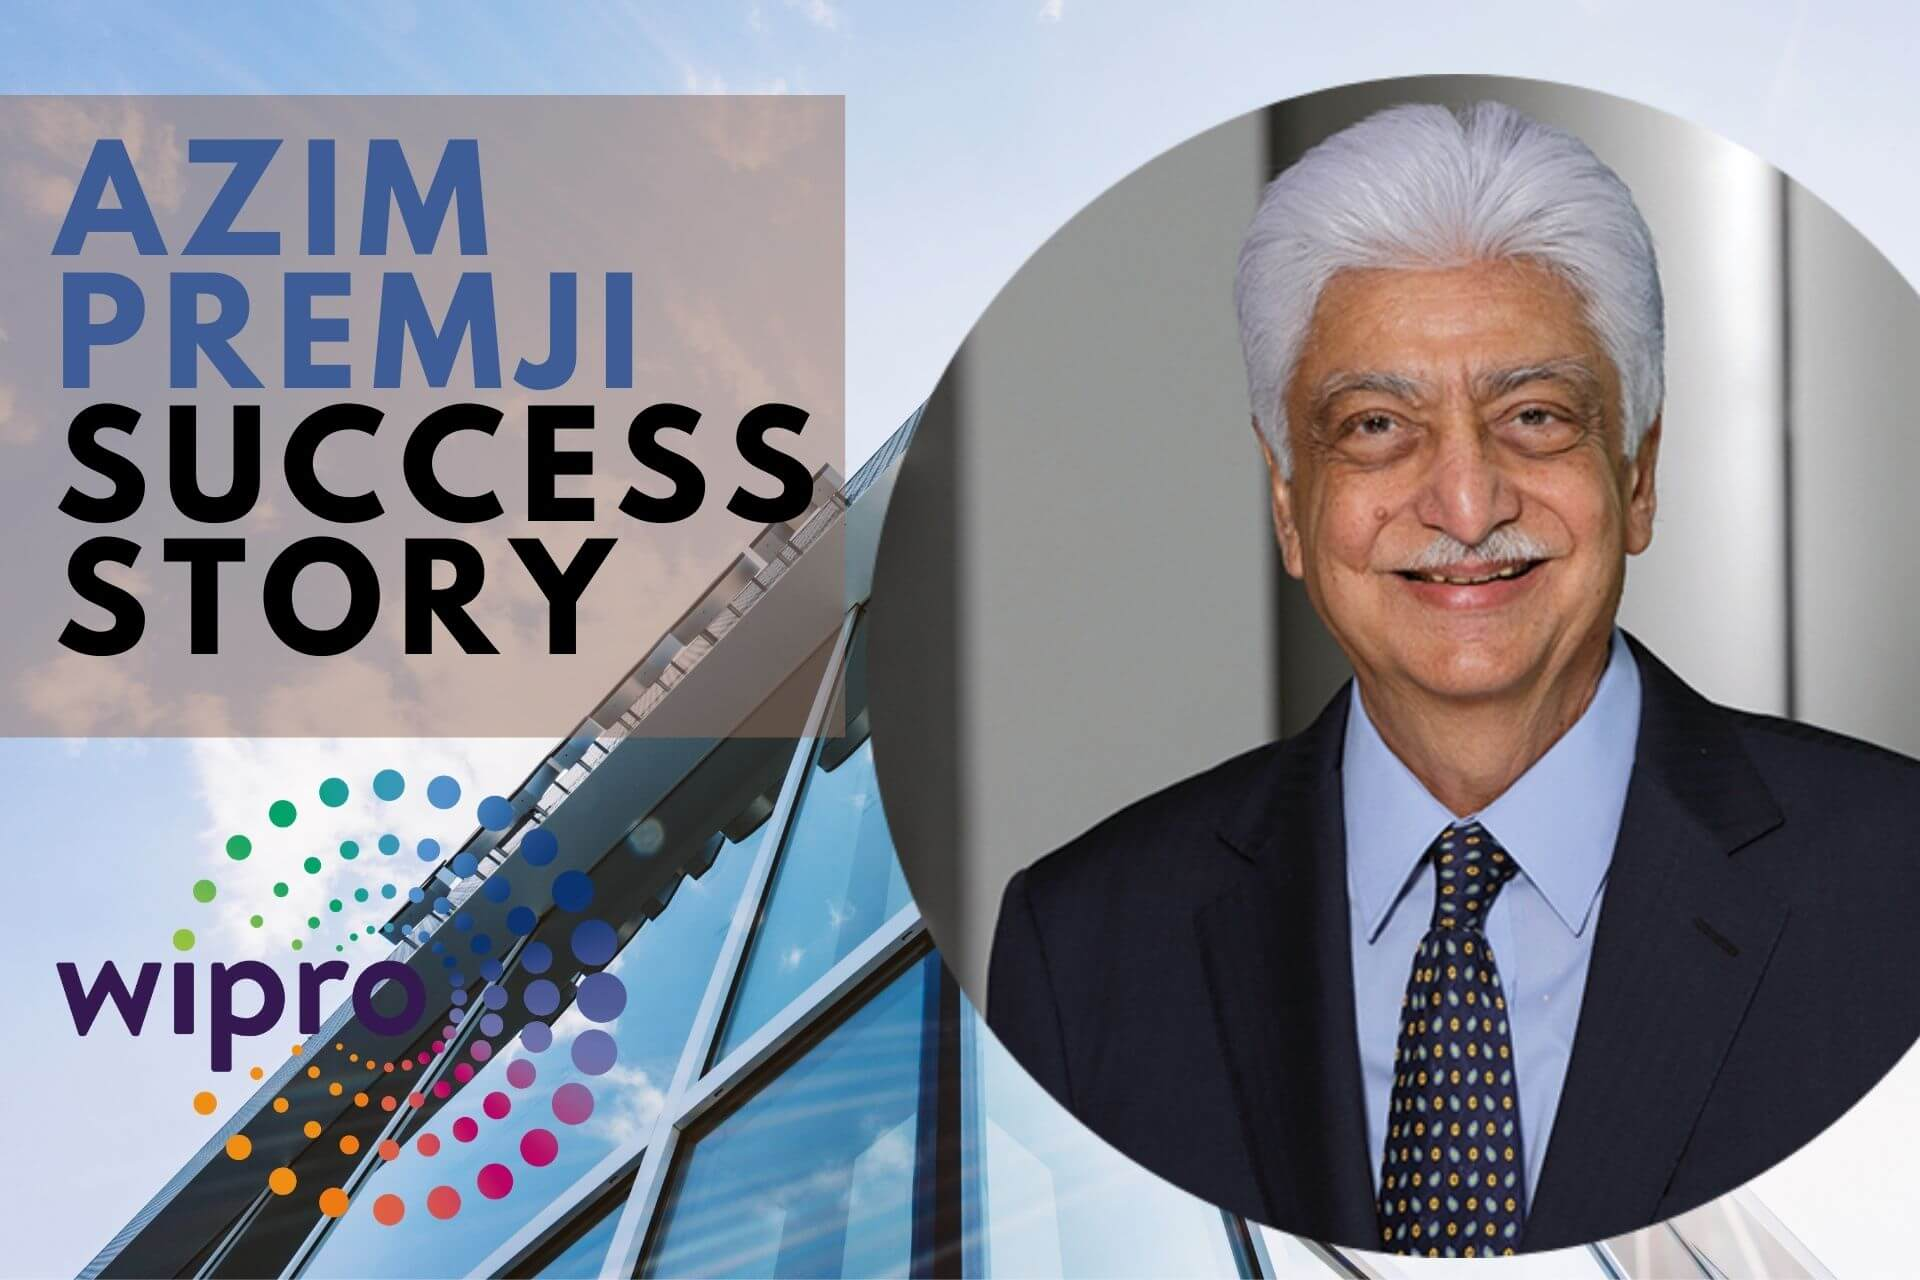 AZIM PREMJI SUCCESS STORY